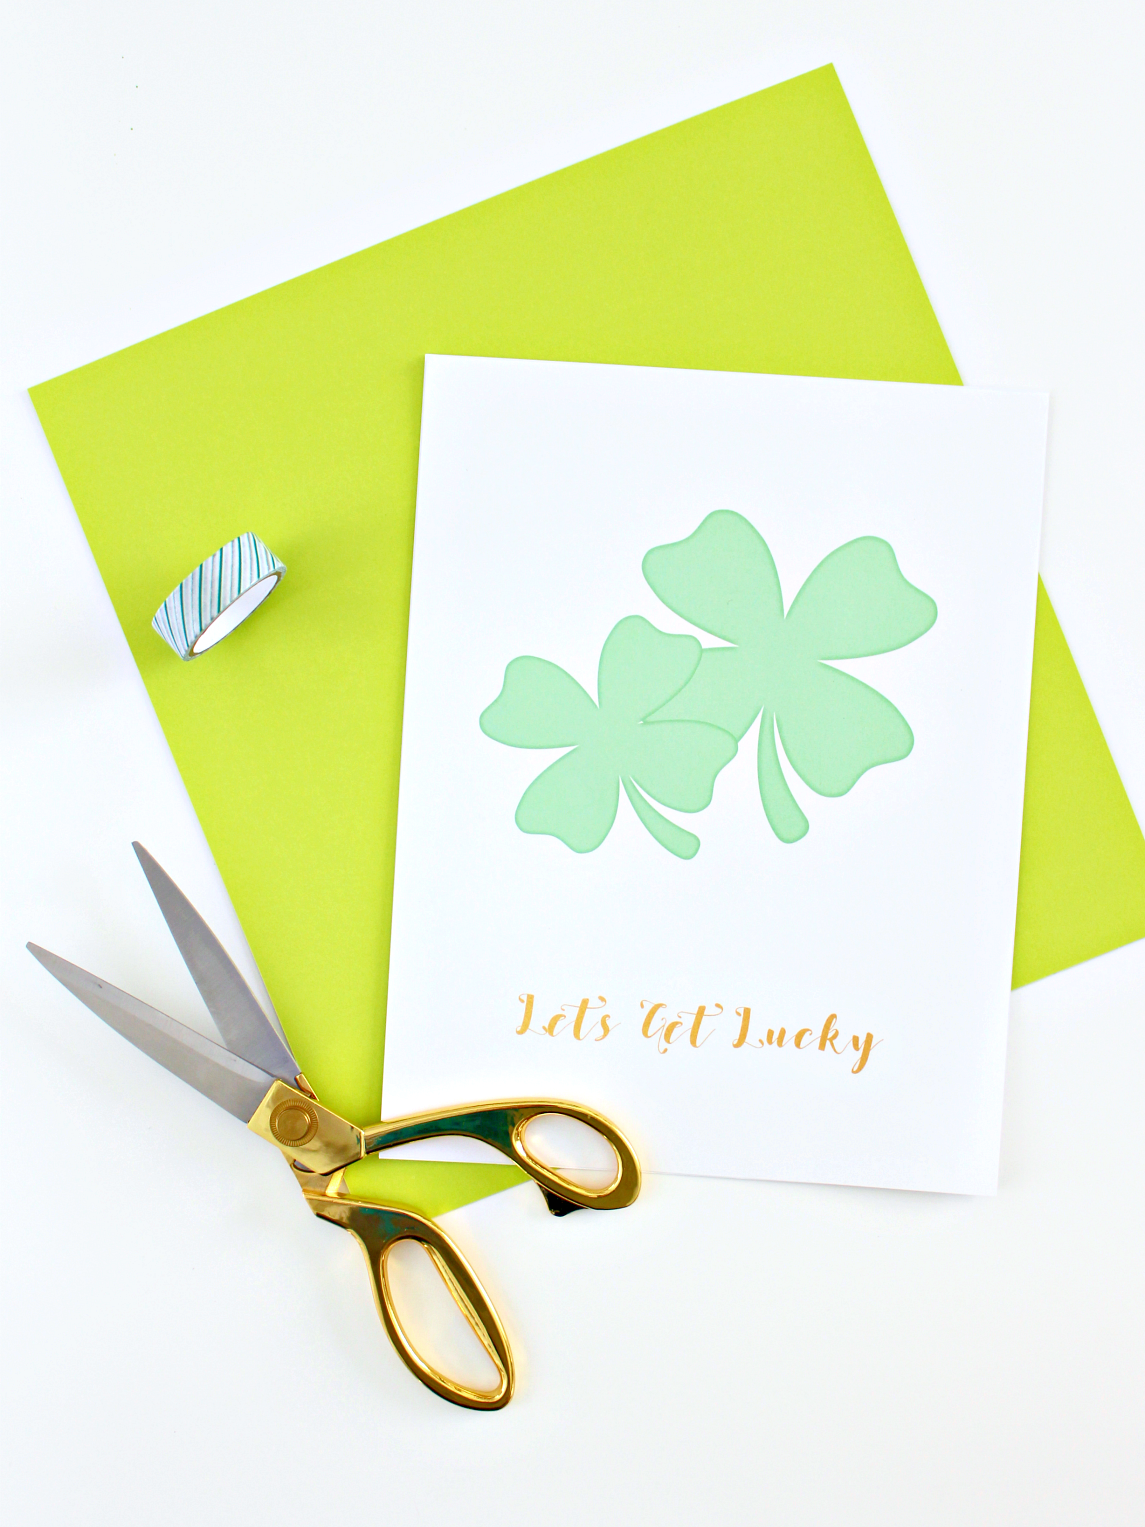 8 ADORABLE PRINTABLES FOR ST. PATRICK'S DAY